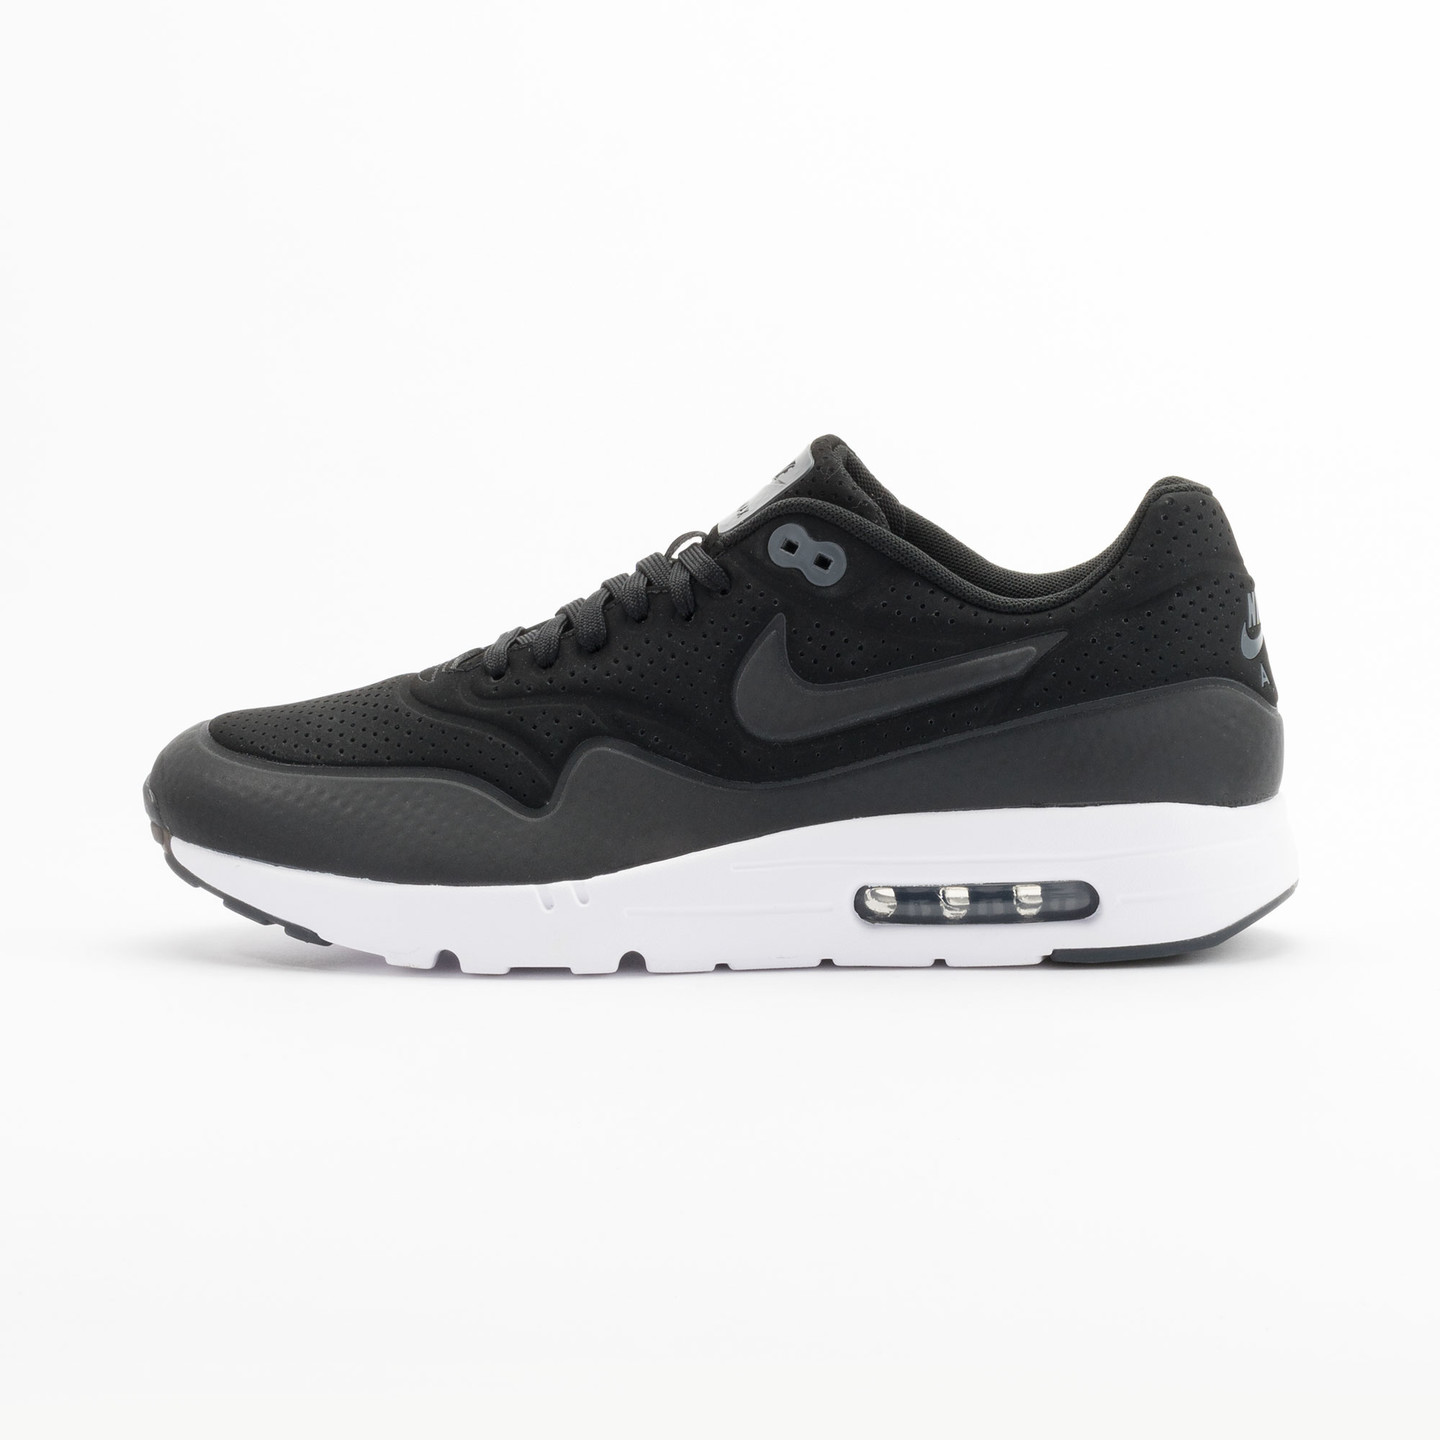 Nike Air Max 1 Ultra Moire Black Reflective / White 705297-010-46